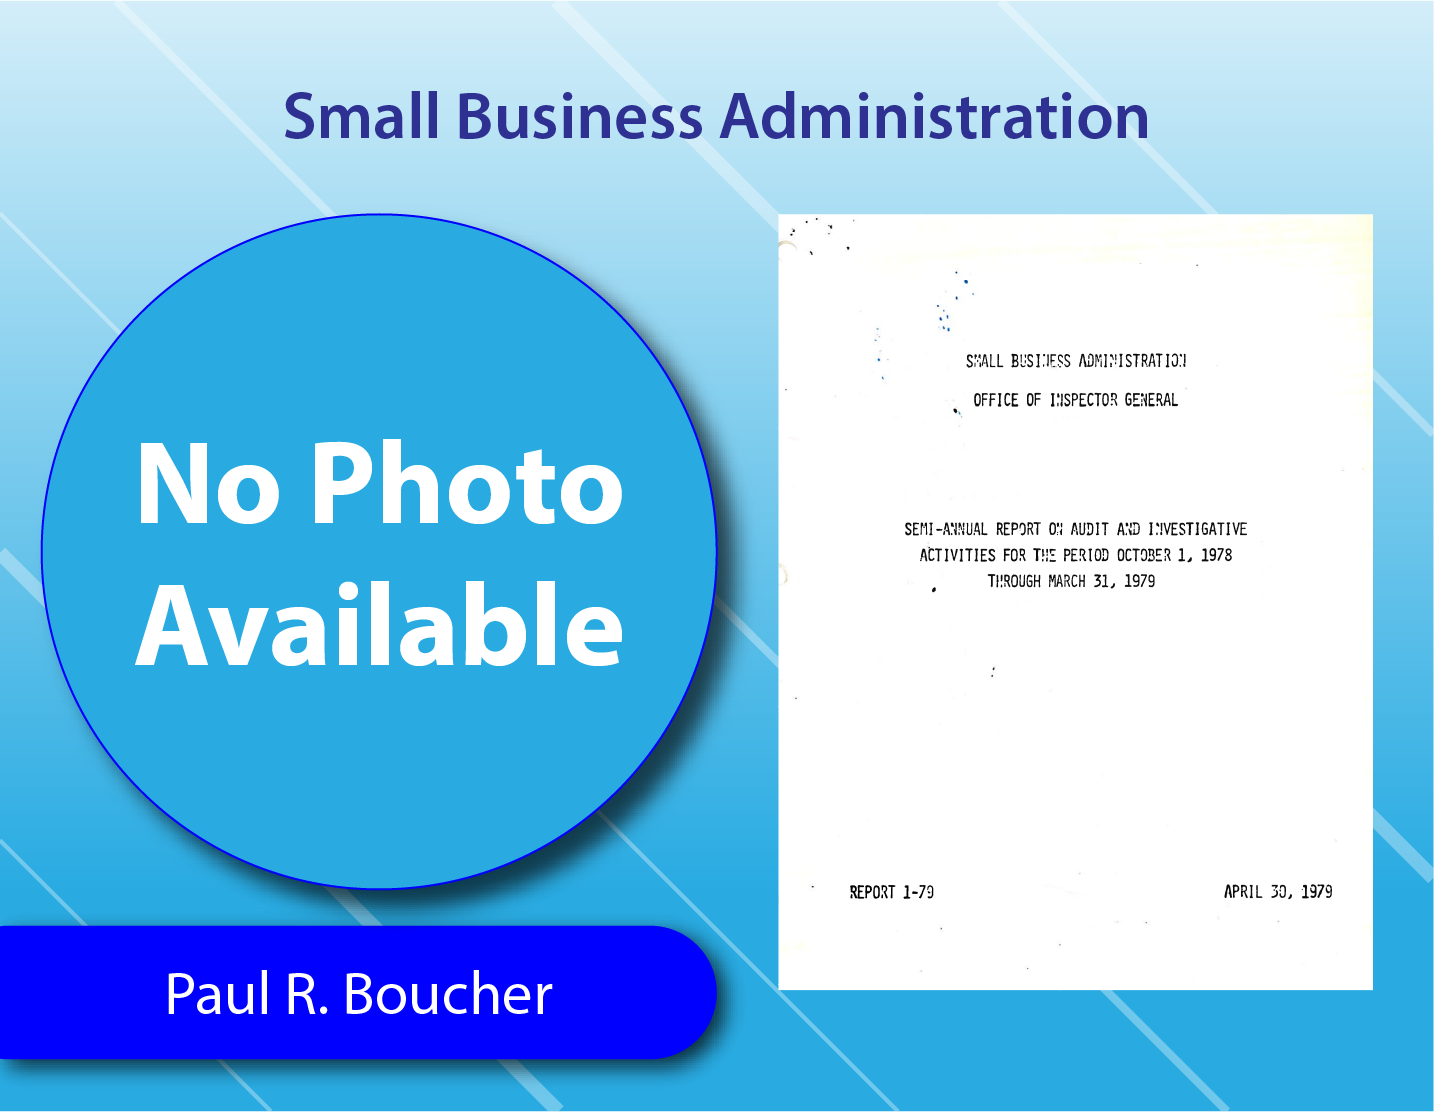 Small Business Administration - Paul R. Boucher